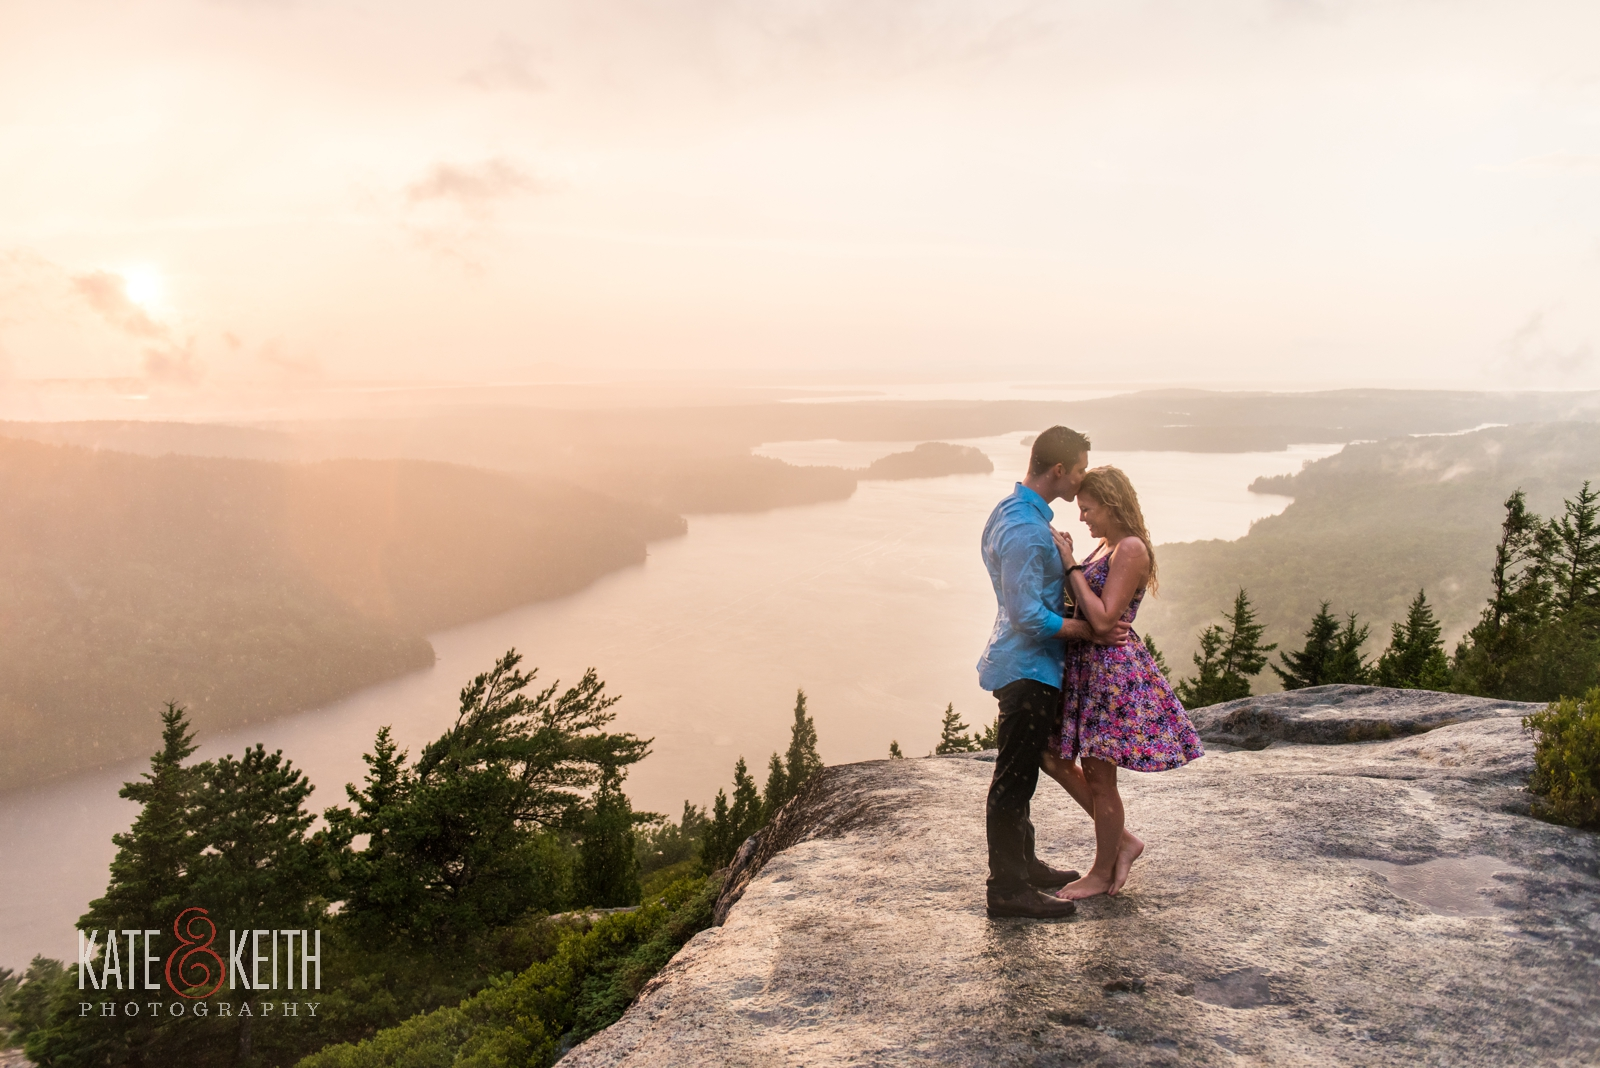 adventure wedding photographers, surprise sunset proposal, Acadia National Park, rain, rainstorm, rainy photo session, rainy engagement photos